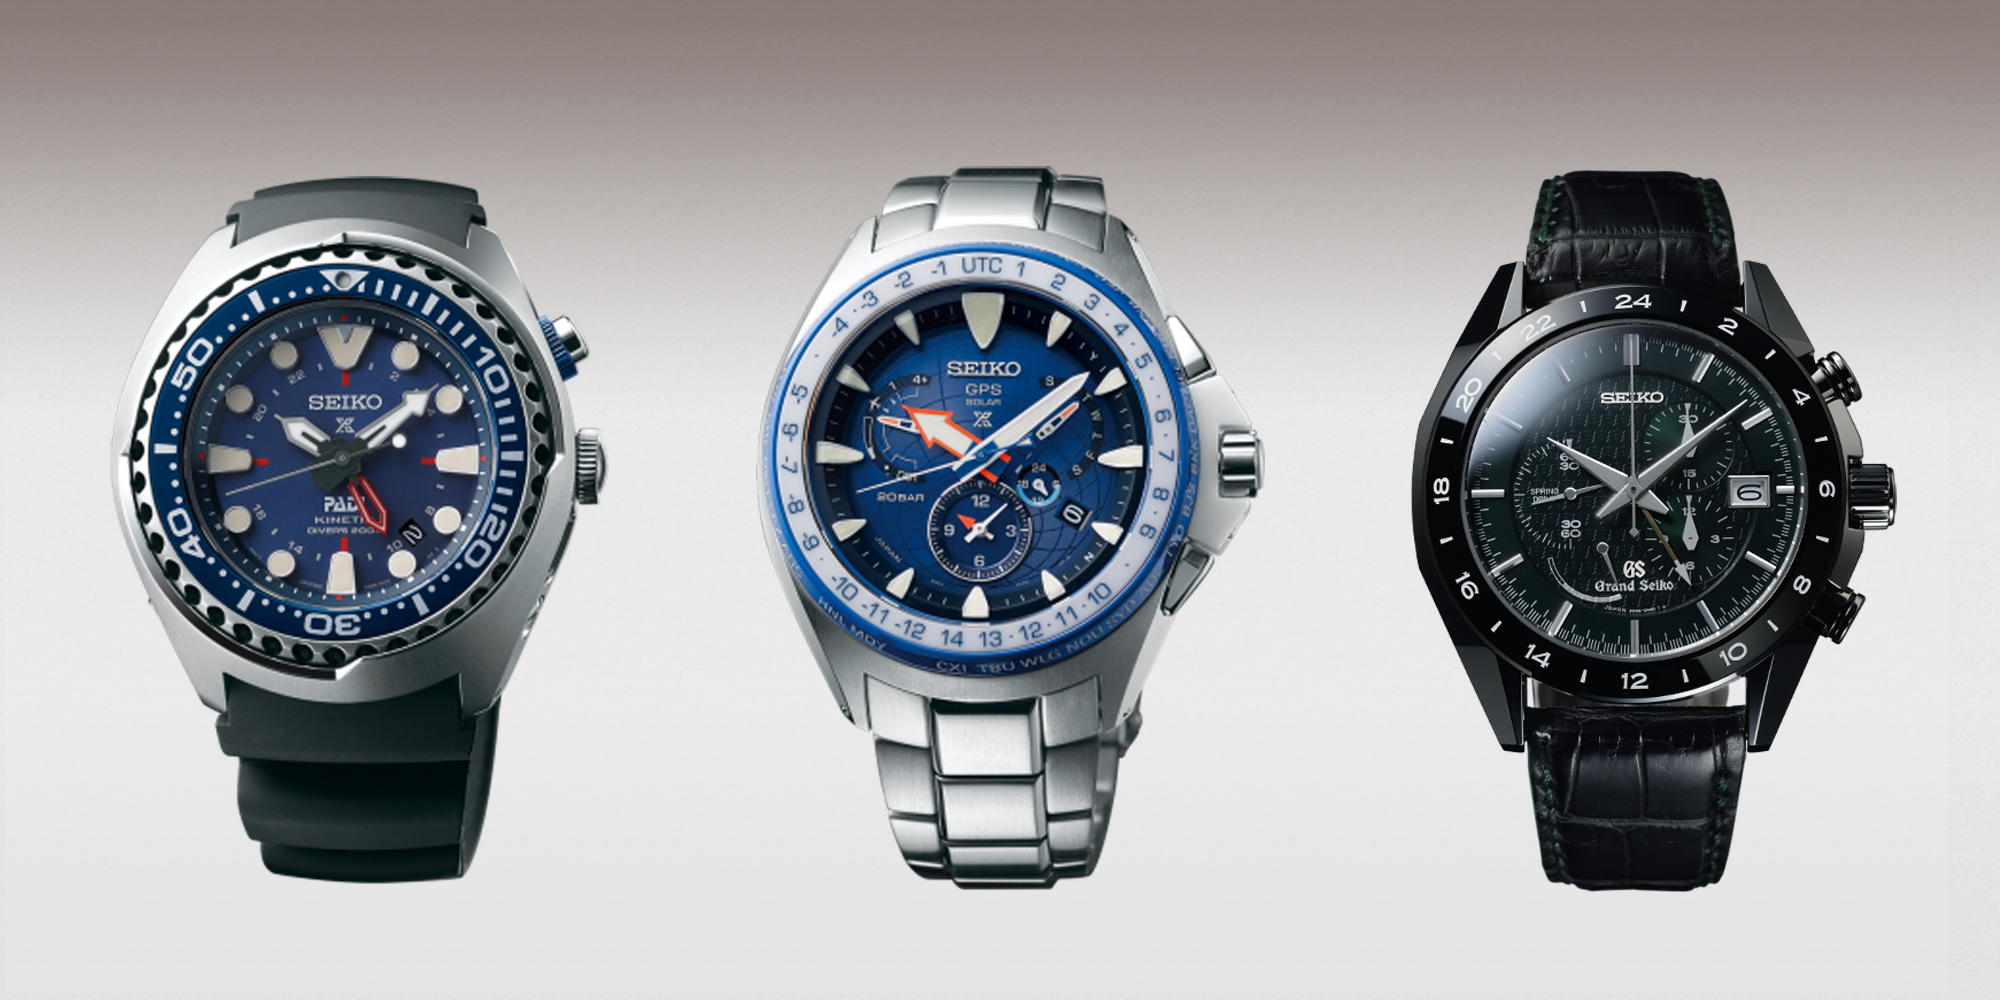 6 Best Seiko Watches As Seen At Baselworld 2018 Seiko